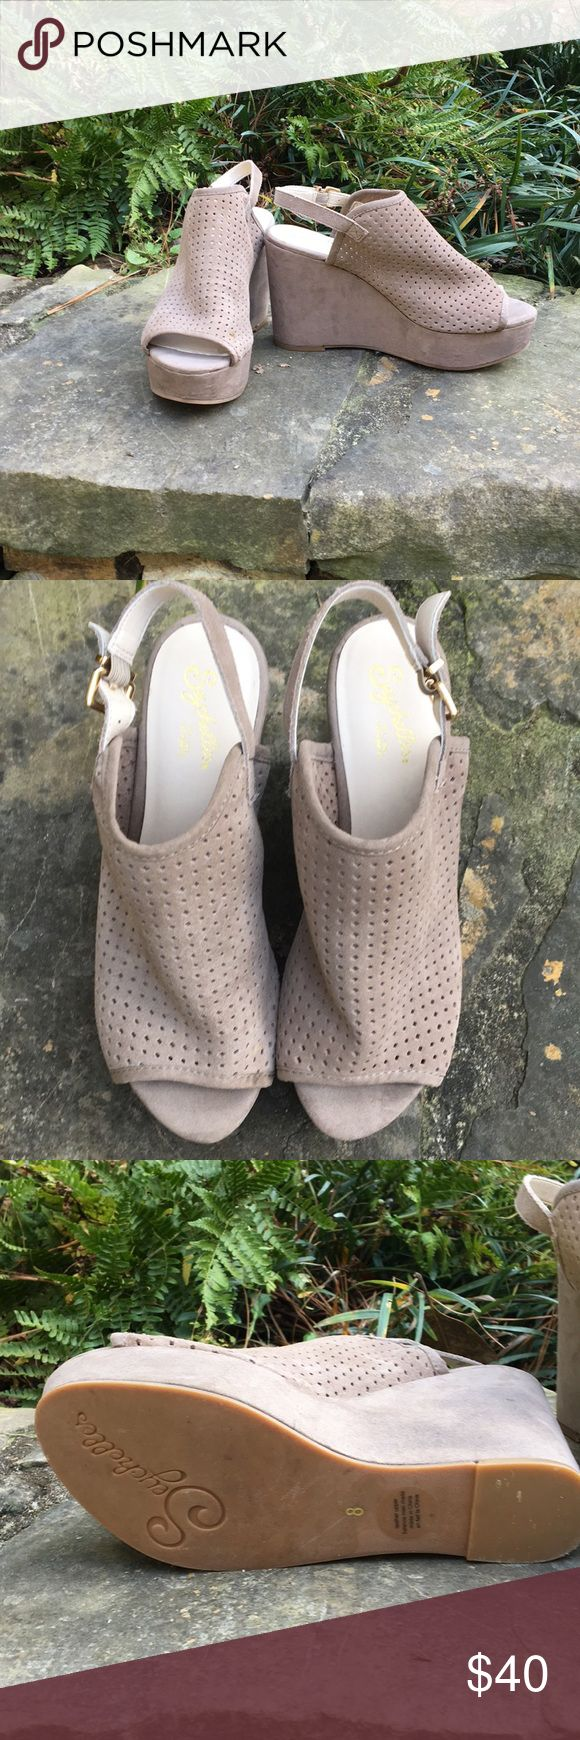 Seychelles neutral wedges- size 8 Worn once- beautiful sand color Seychelles Shoes Wedges